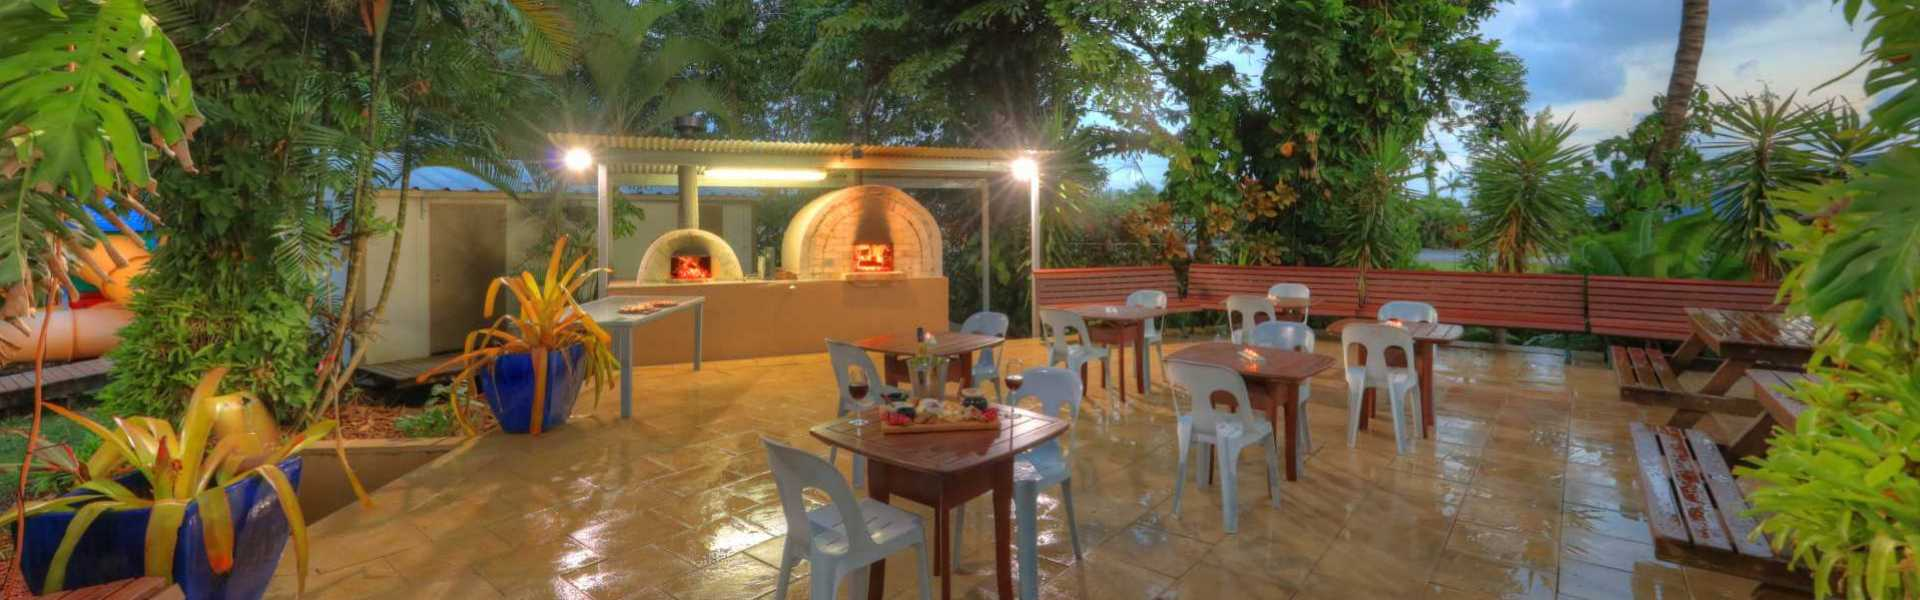 Kui Parks, Tropical Hibiscus Caravan Park, Mission Beach, Pizza Oven